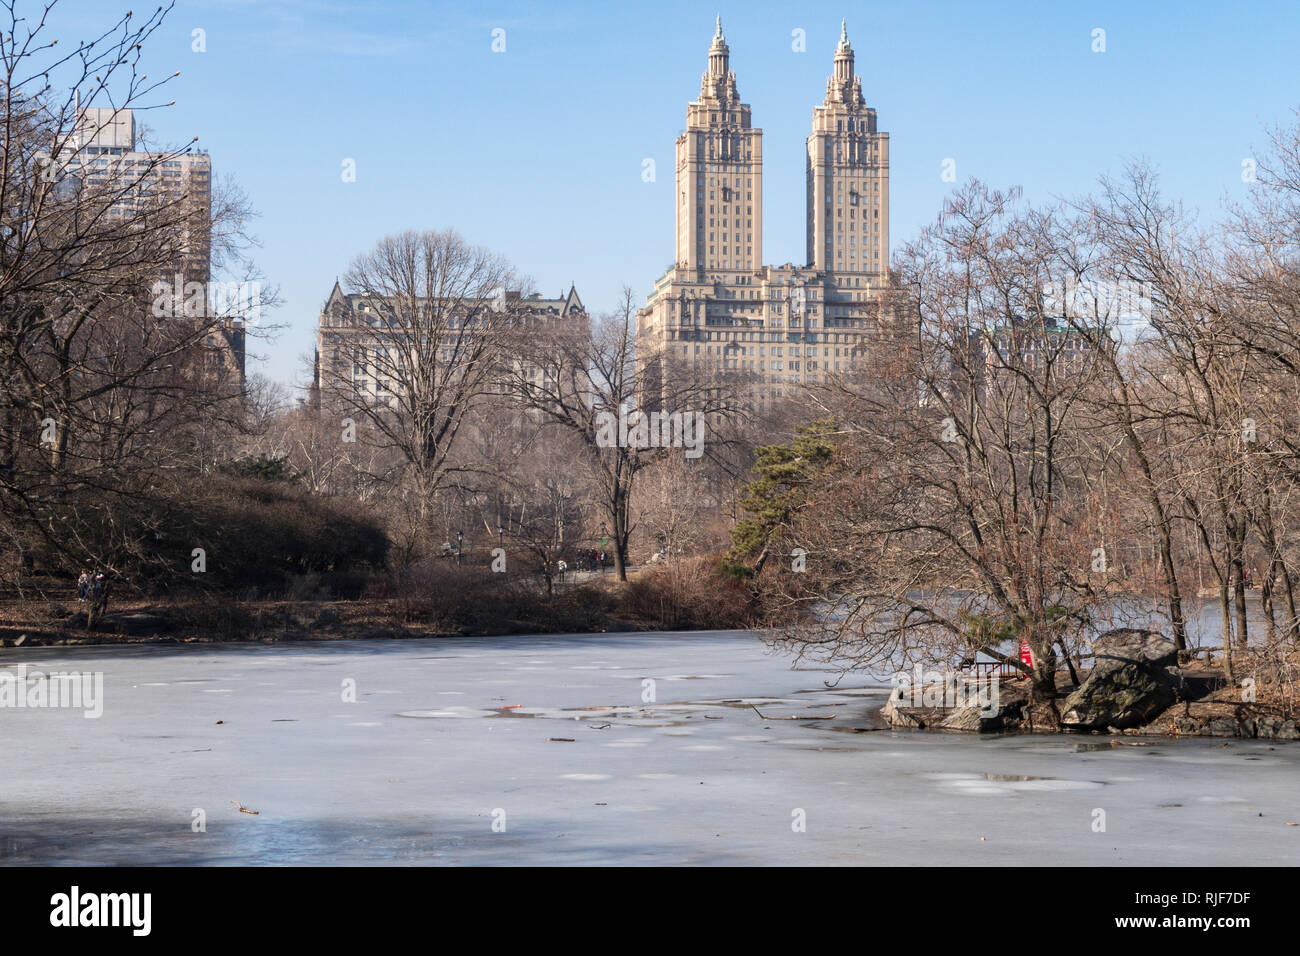 The Lake in Central Park Freezes in Winter, NYC, USA - Stock Image